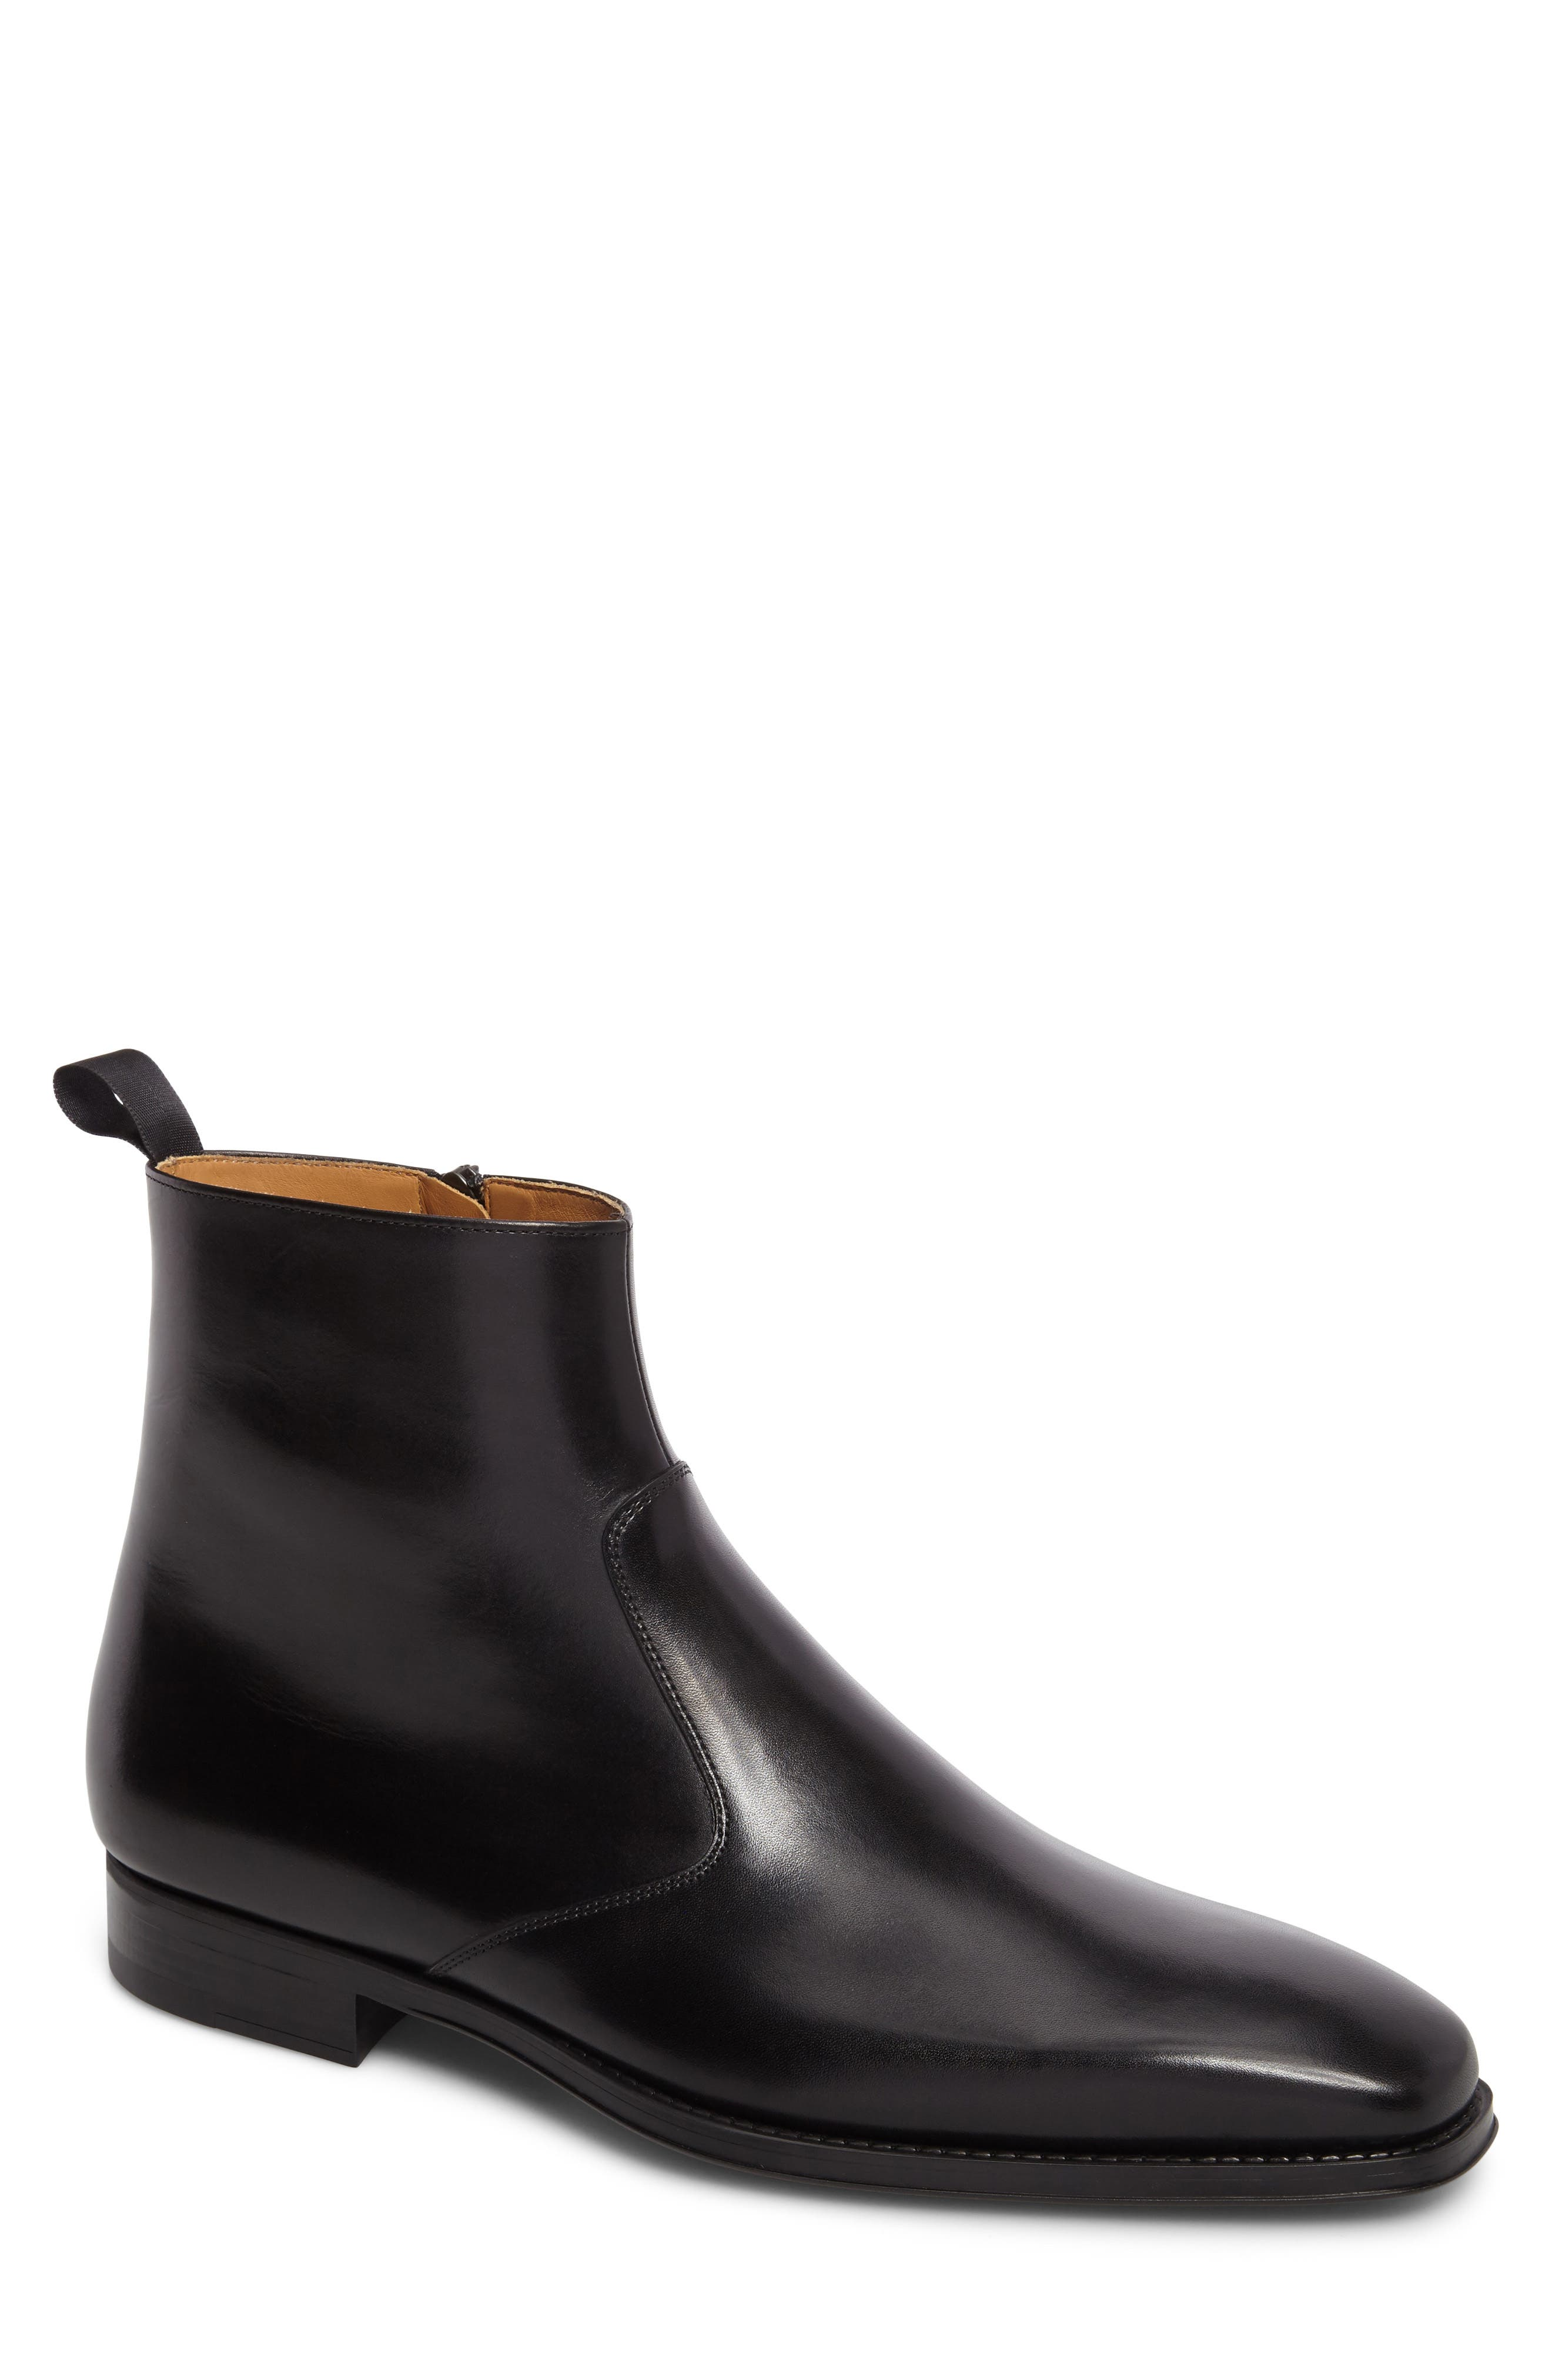 Rosdale Zip Boot,                             Main thumbnail 1, color,                             Black Leather